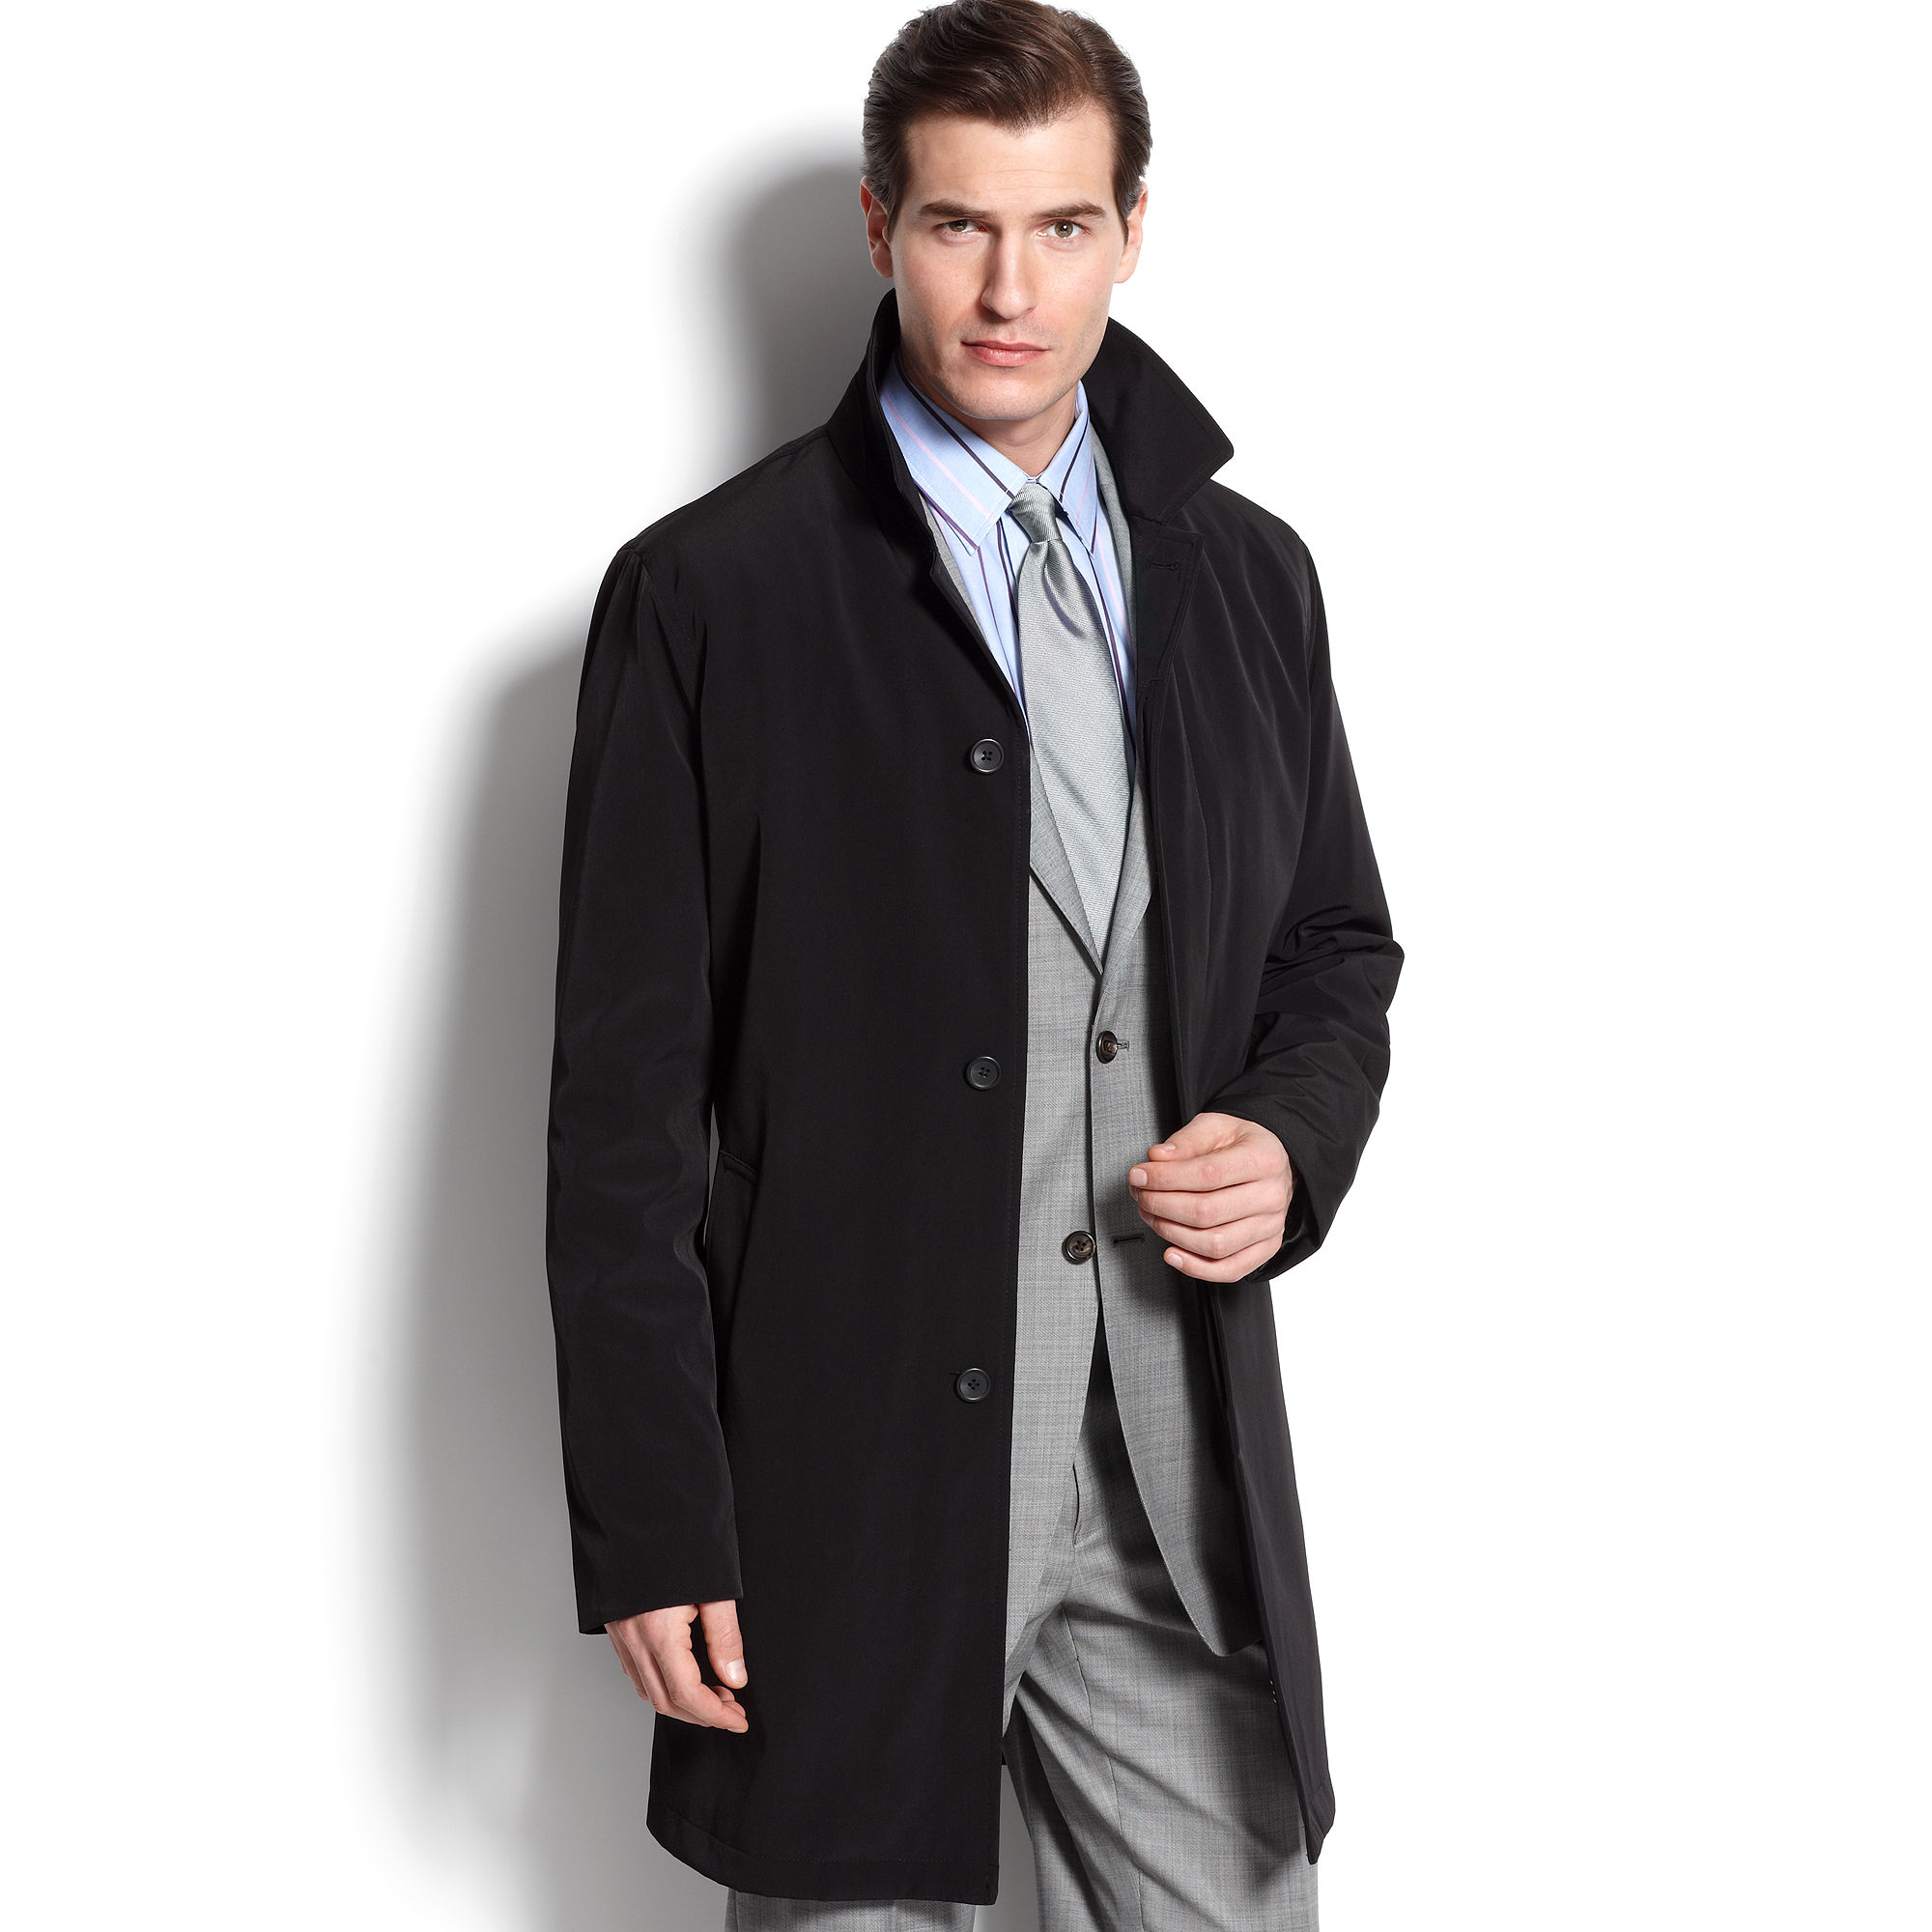 kenneth black single women Shop women's kenneth cole reaction coats on lyst track over 130 kenneth cole reaction coats for stock and sale updates.